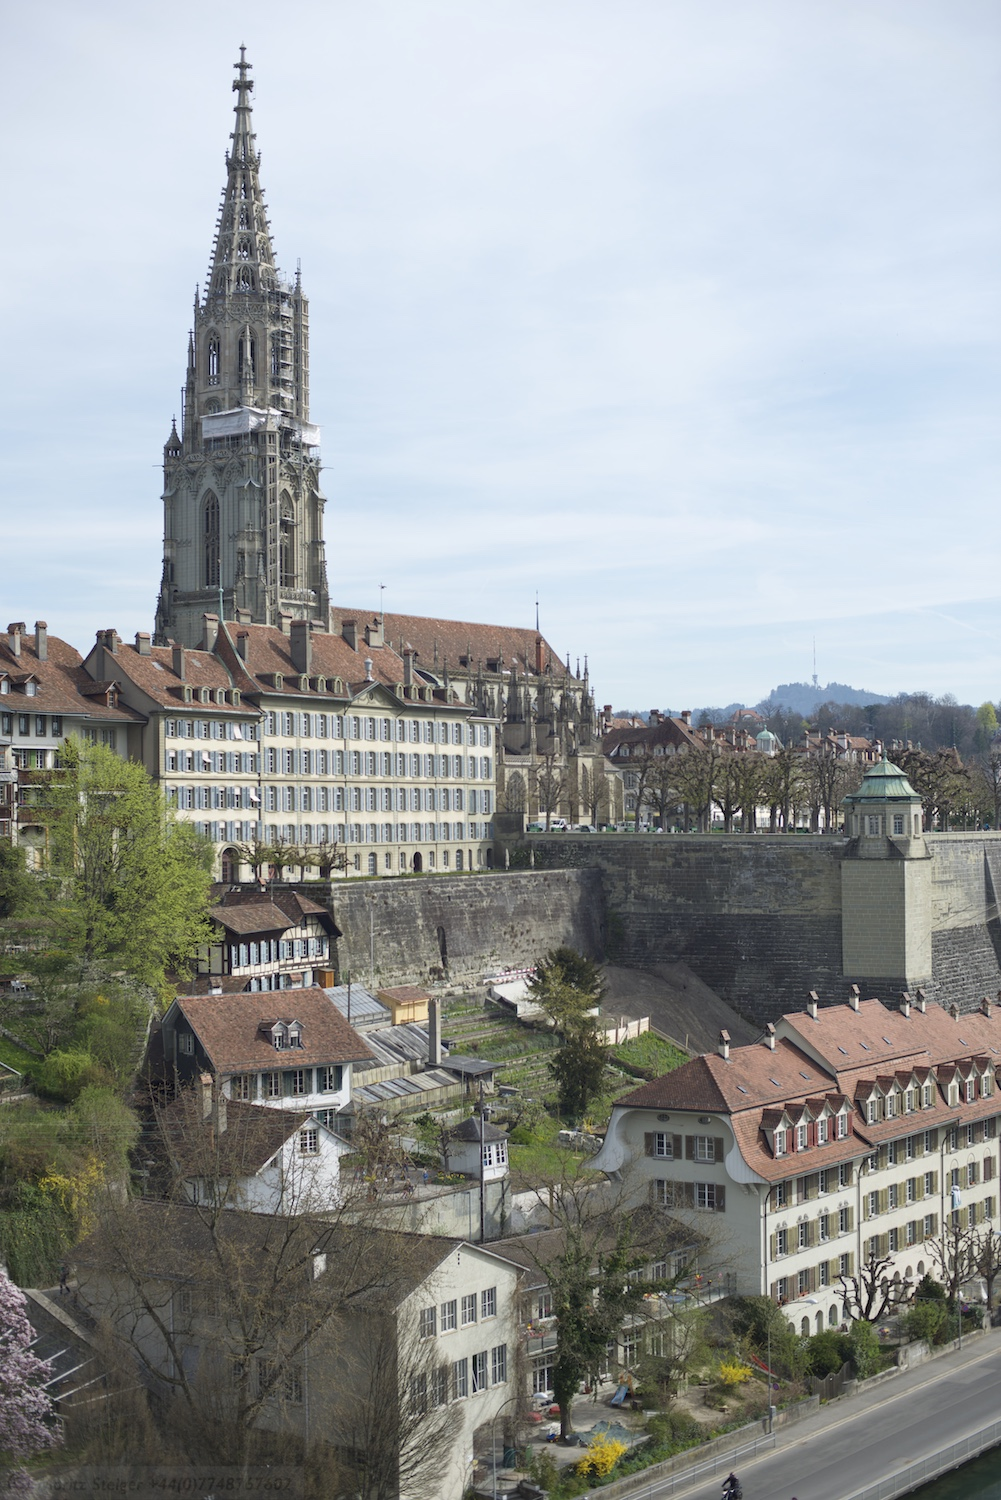 The impressive 15th century Gothic cathedral, the Münster of Bern